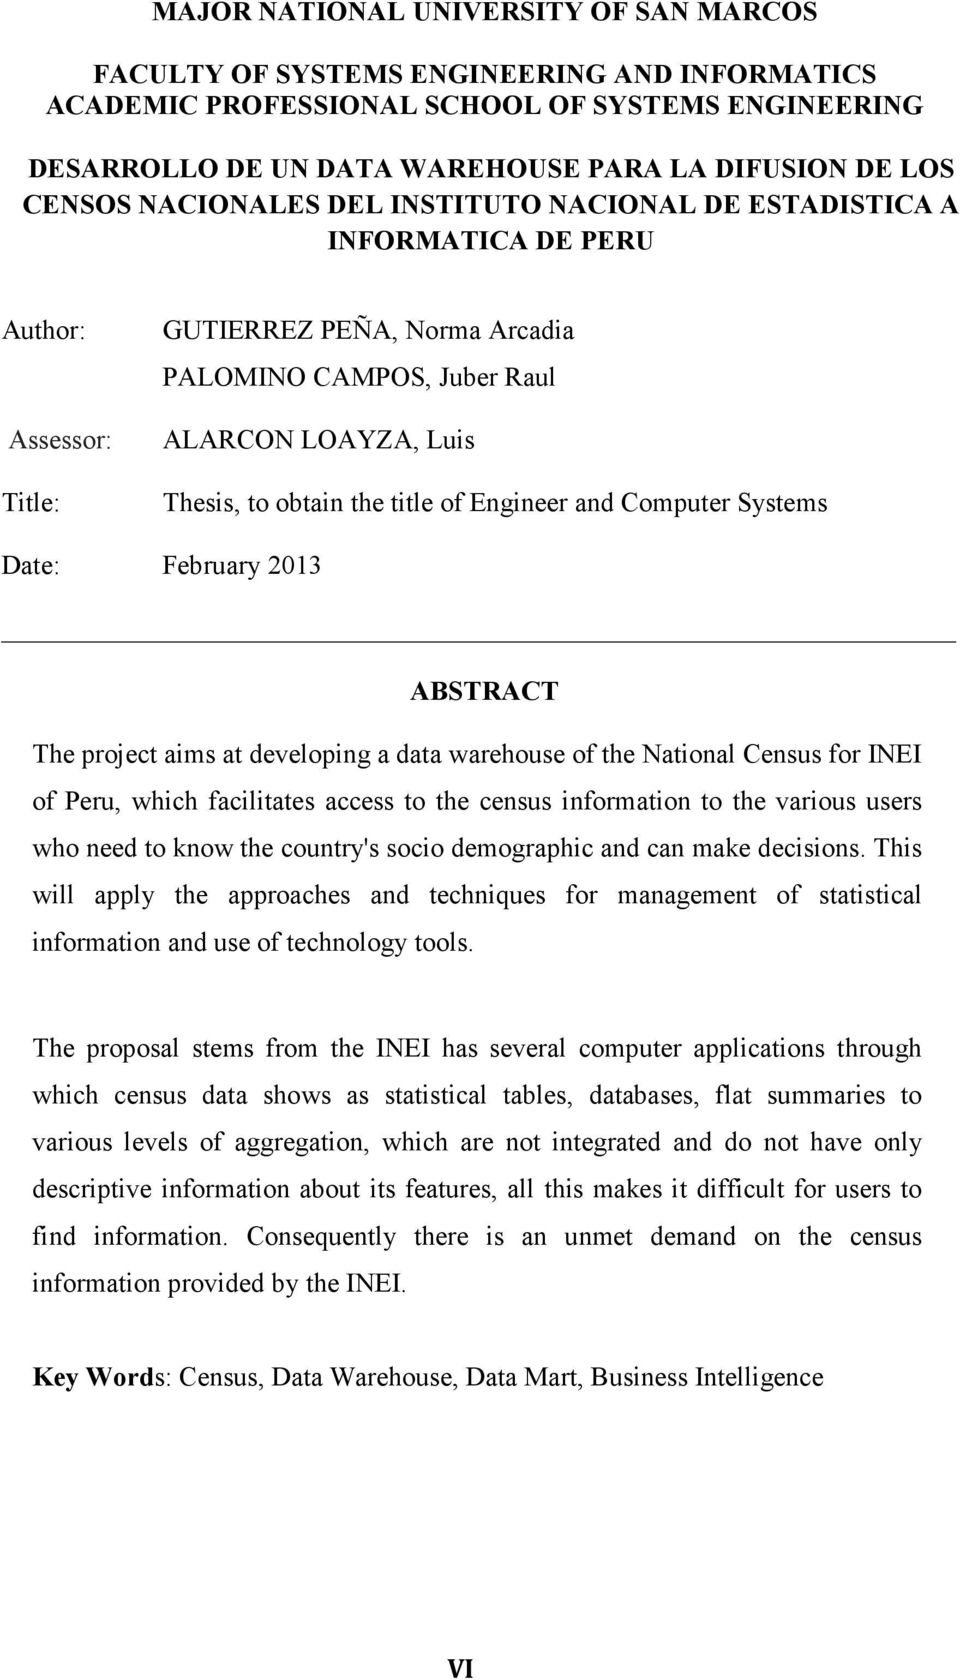 the title of Engineer and Computer Systems Date: February 2013 ABSTRACT The project aims at developing a data warehouse of the National Census for INEI of Peru, which facilitates access to the census